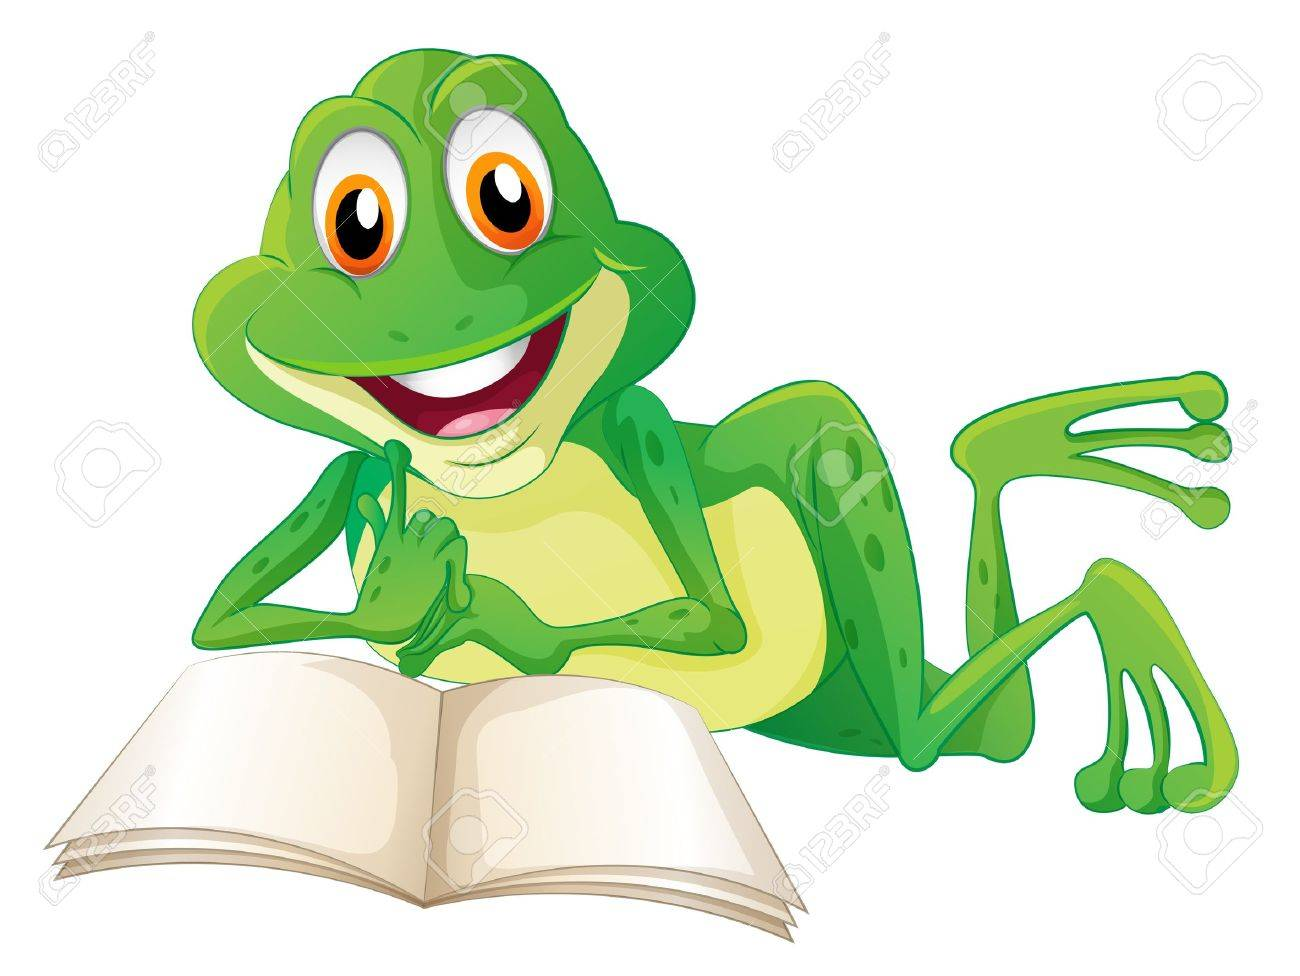 Illustration of a frog lying while reading a book on a white background Stock Vector - 20142993